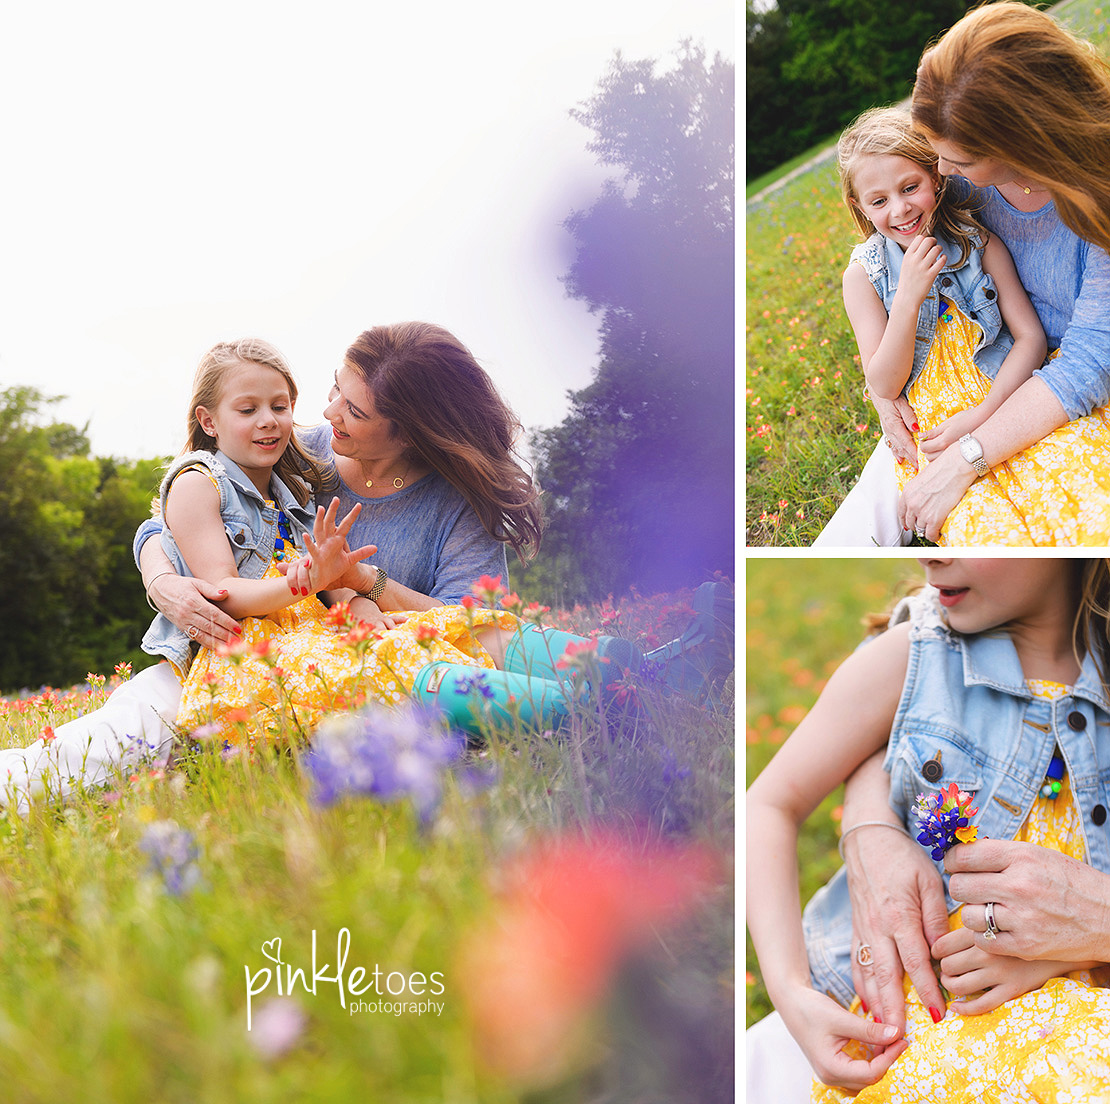 austin-new-jersey-texas-wildflowers-bluebonnets-family-photographer-lifestyle-photography-08